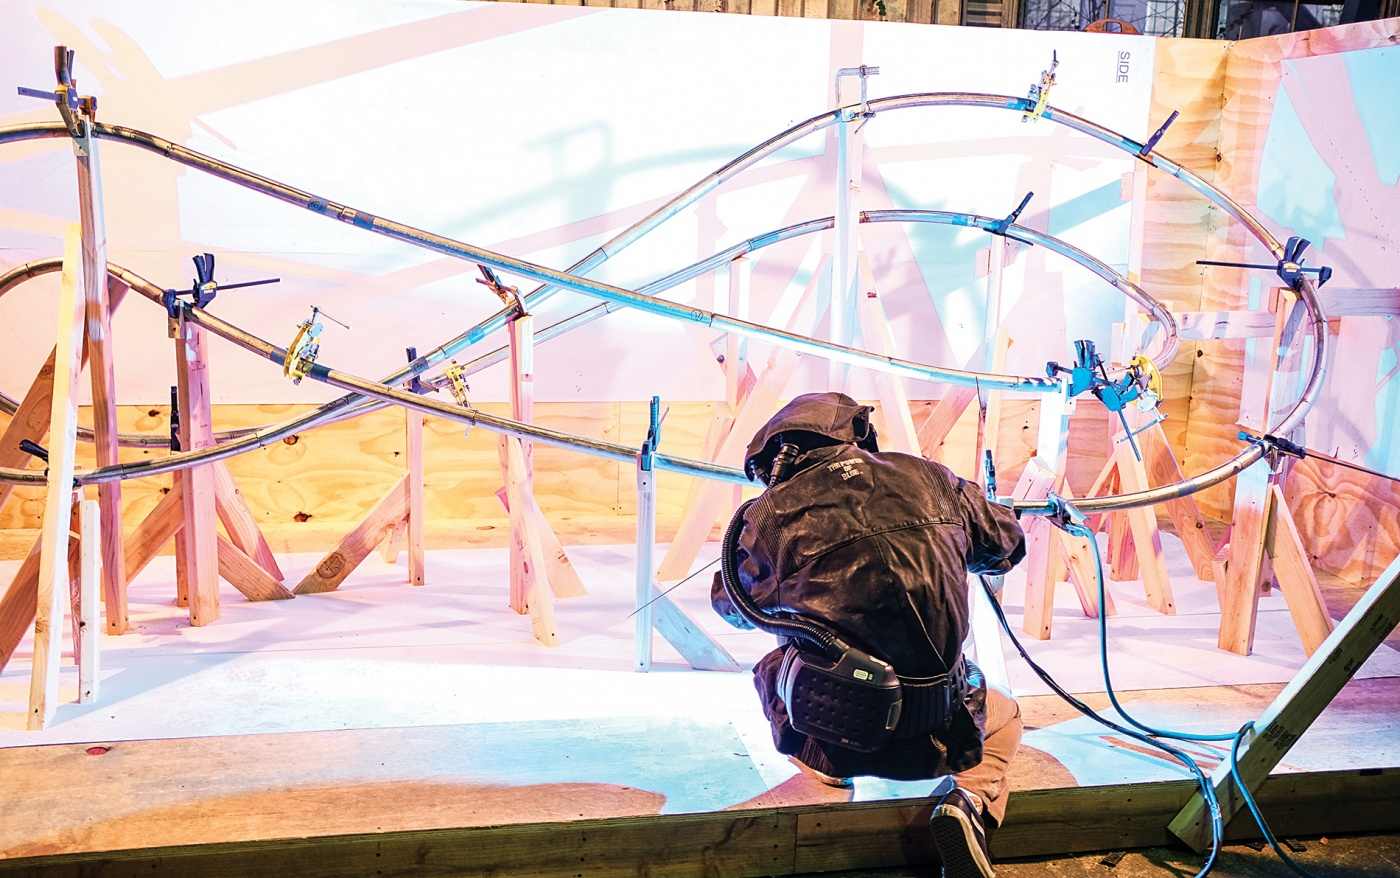 Photograph of a student welding the sculpture